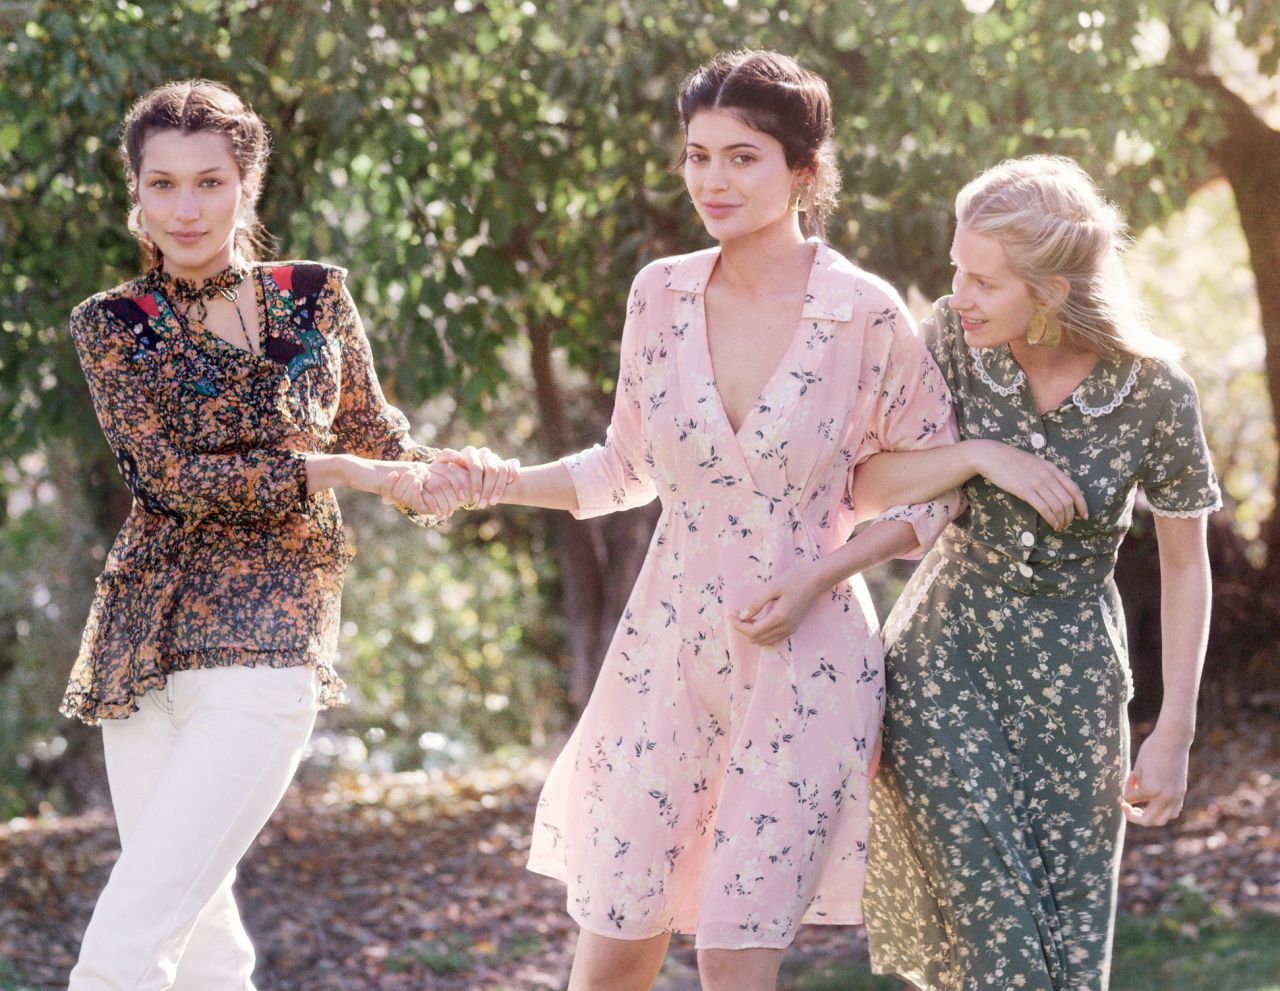 Kylie Jenner, Bella Hadid and Lottie Moss Featured In Vogue Magazine December 2015 Issue 3